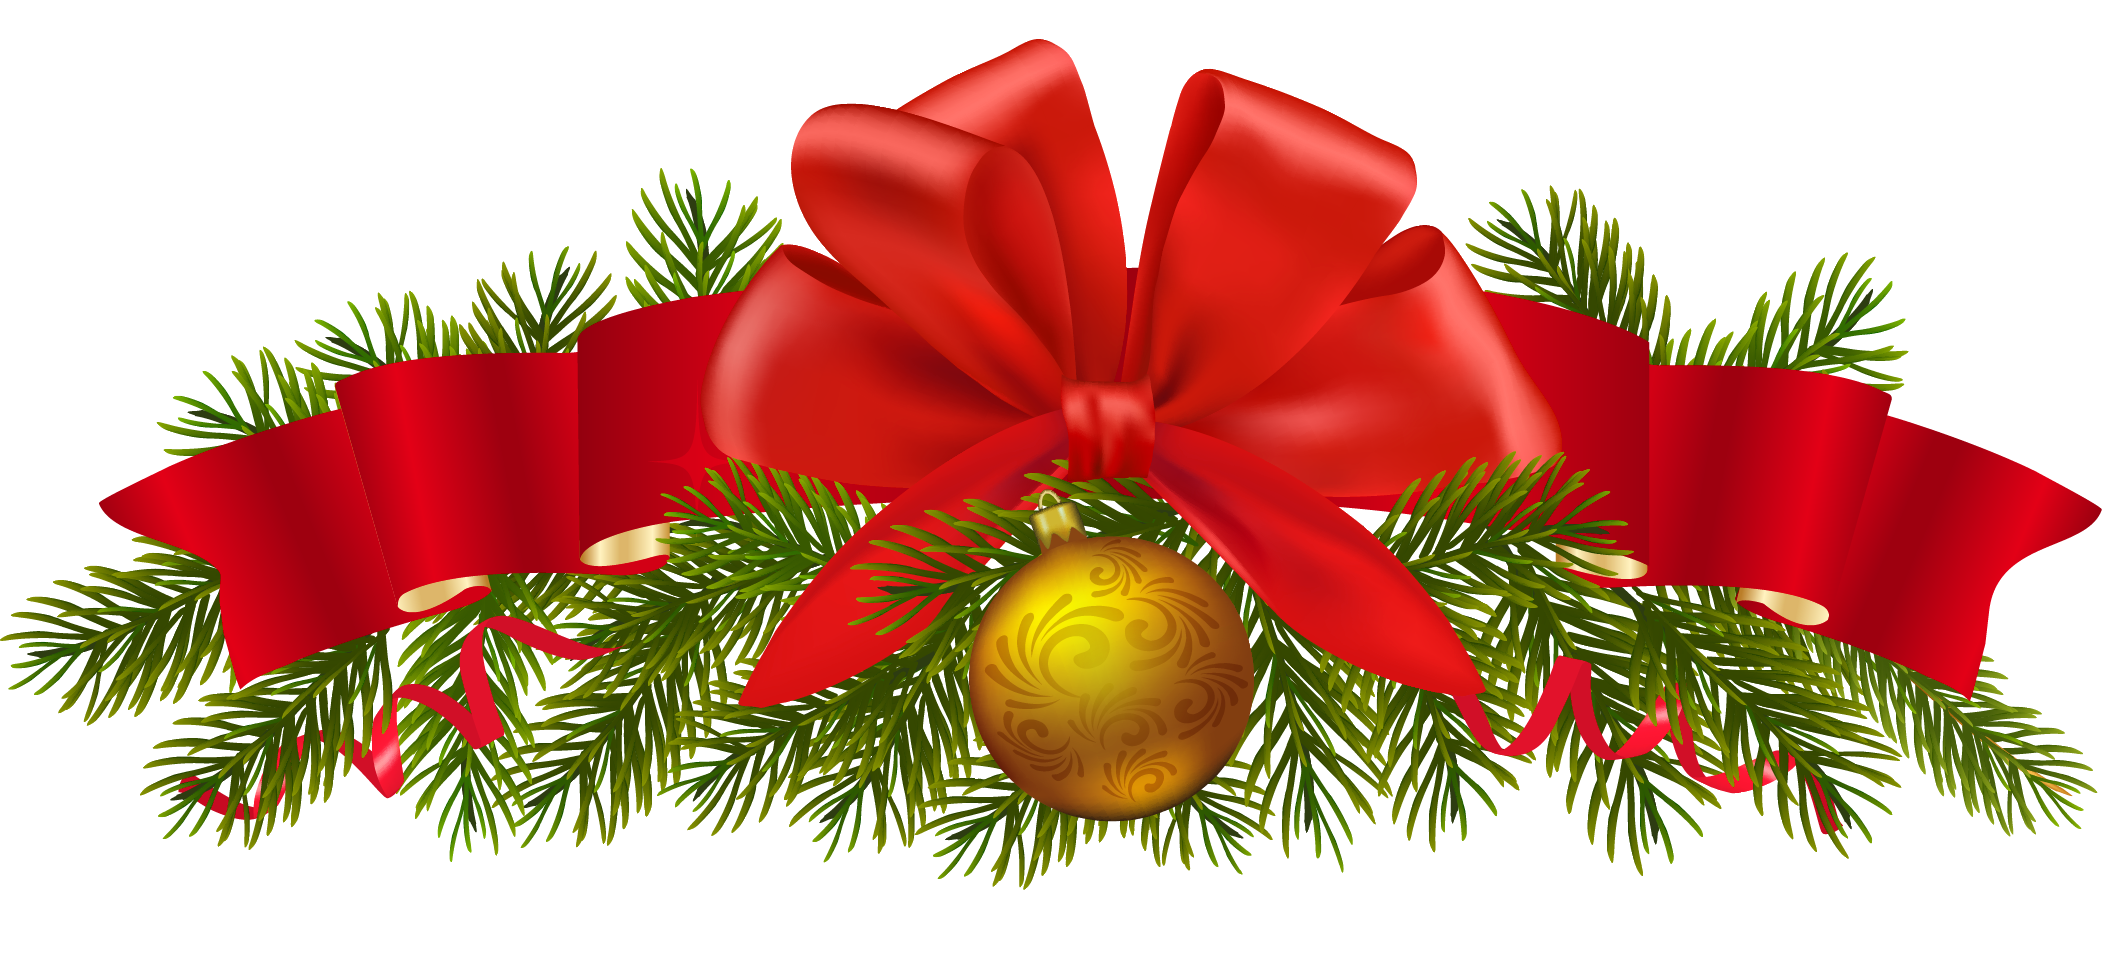 Christmas Hd Png Transparent Christmas Hd Png Images